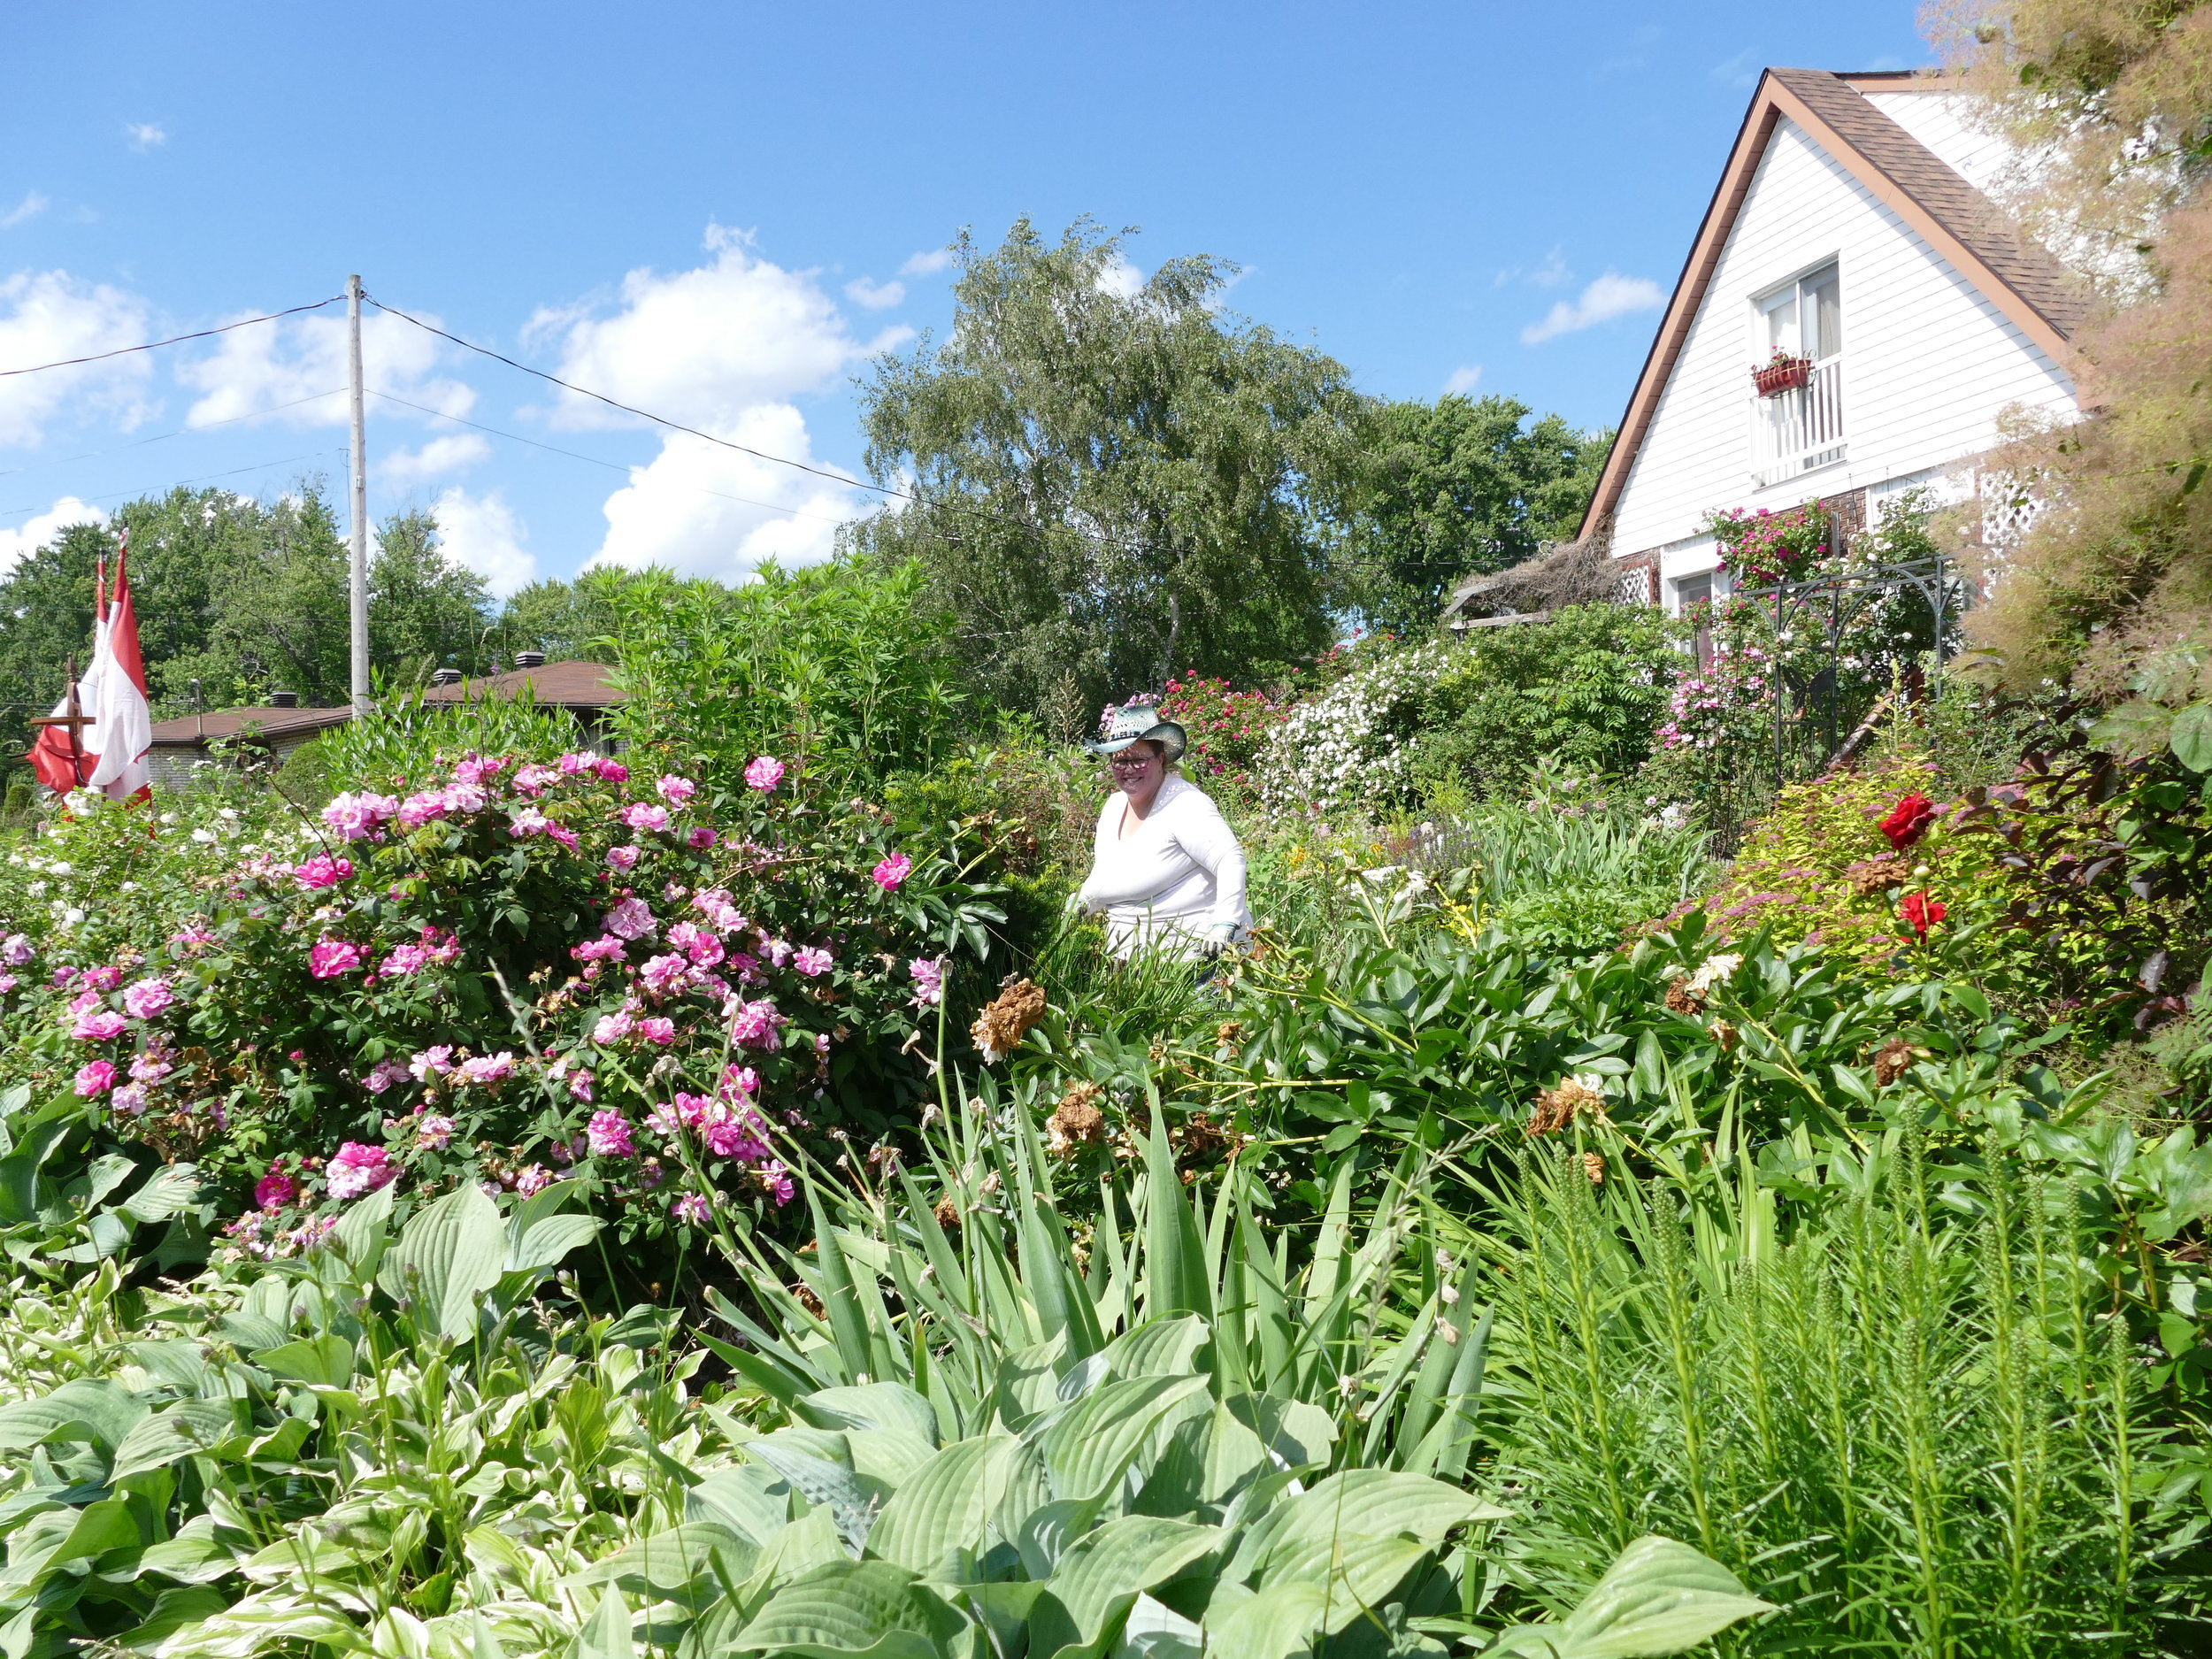 Candy and Peter work in their incredible garden which is like a beautiful welcome mat for guests staying at their bed and breakfast.